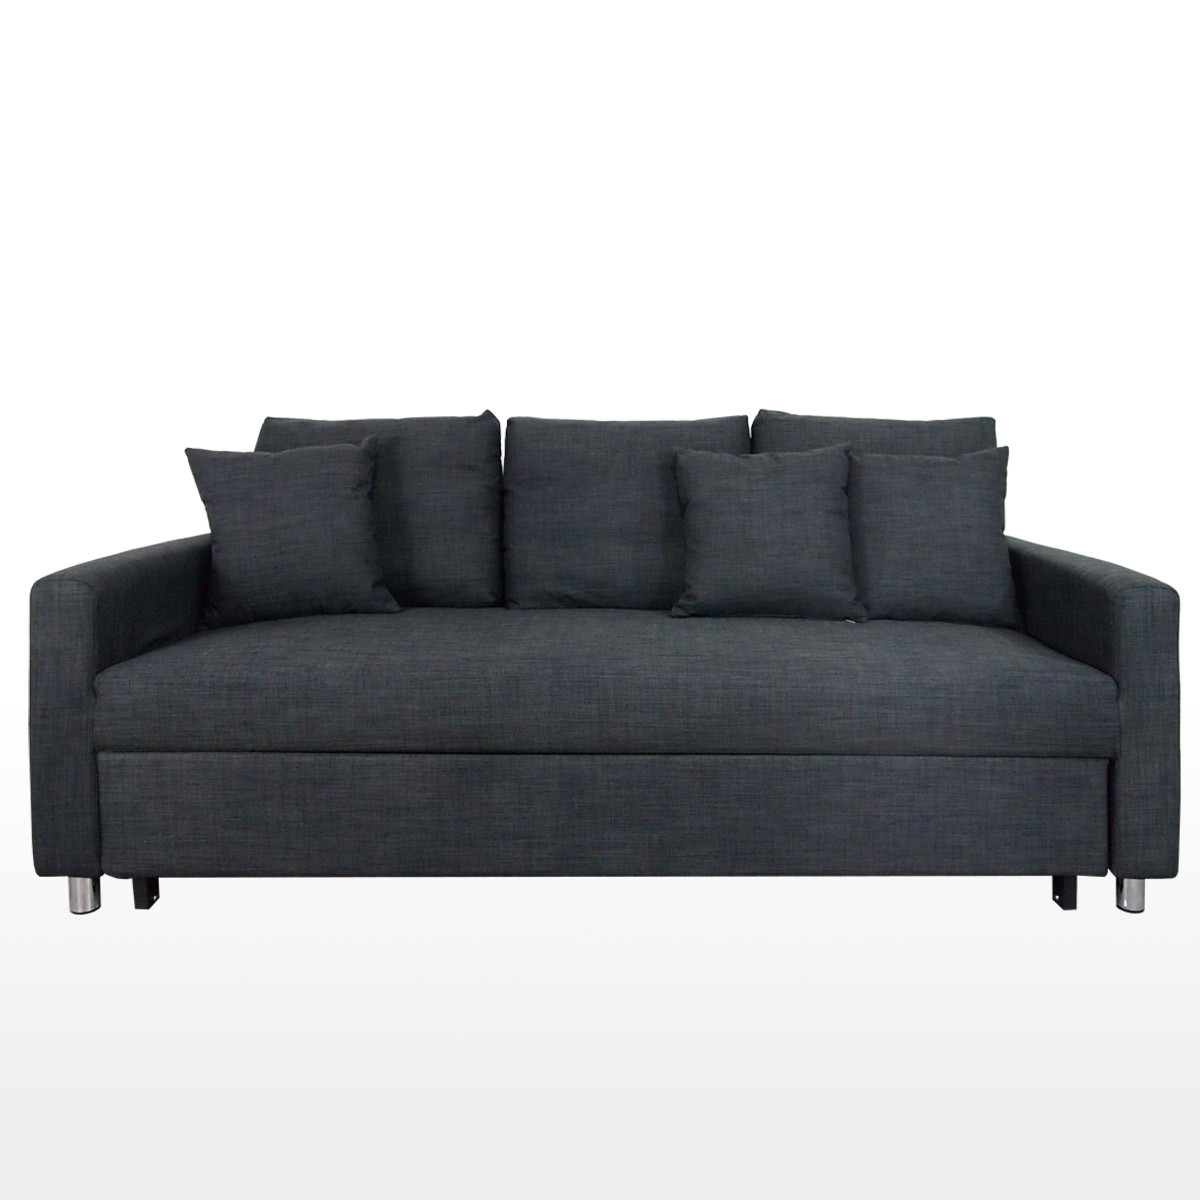 sale retailer a95d0 d3994 Vernon Sofa Bed, Grey (3 Seater)